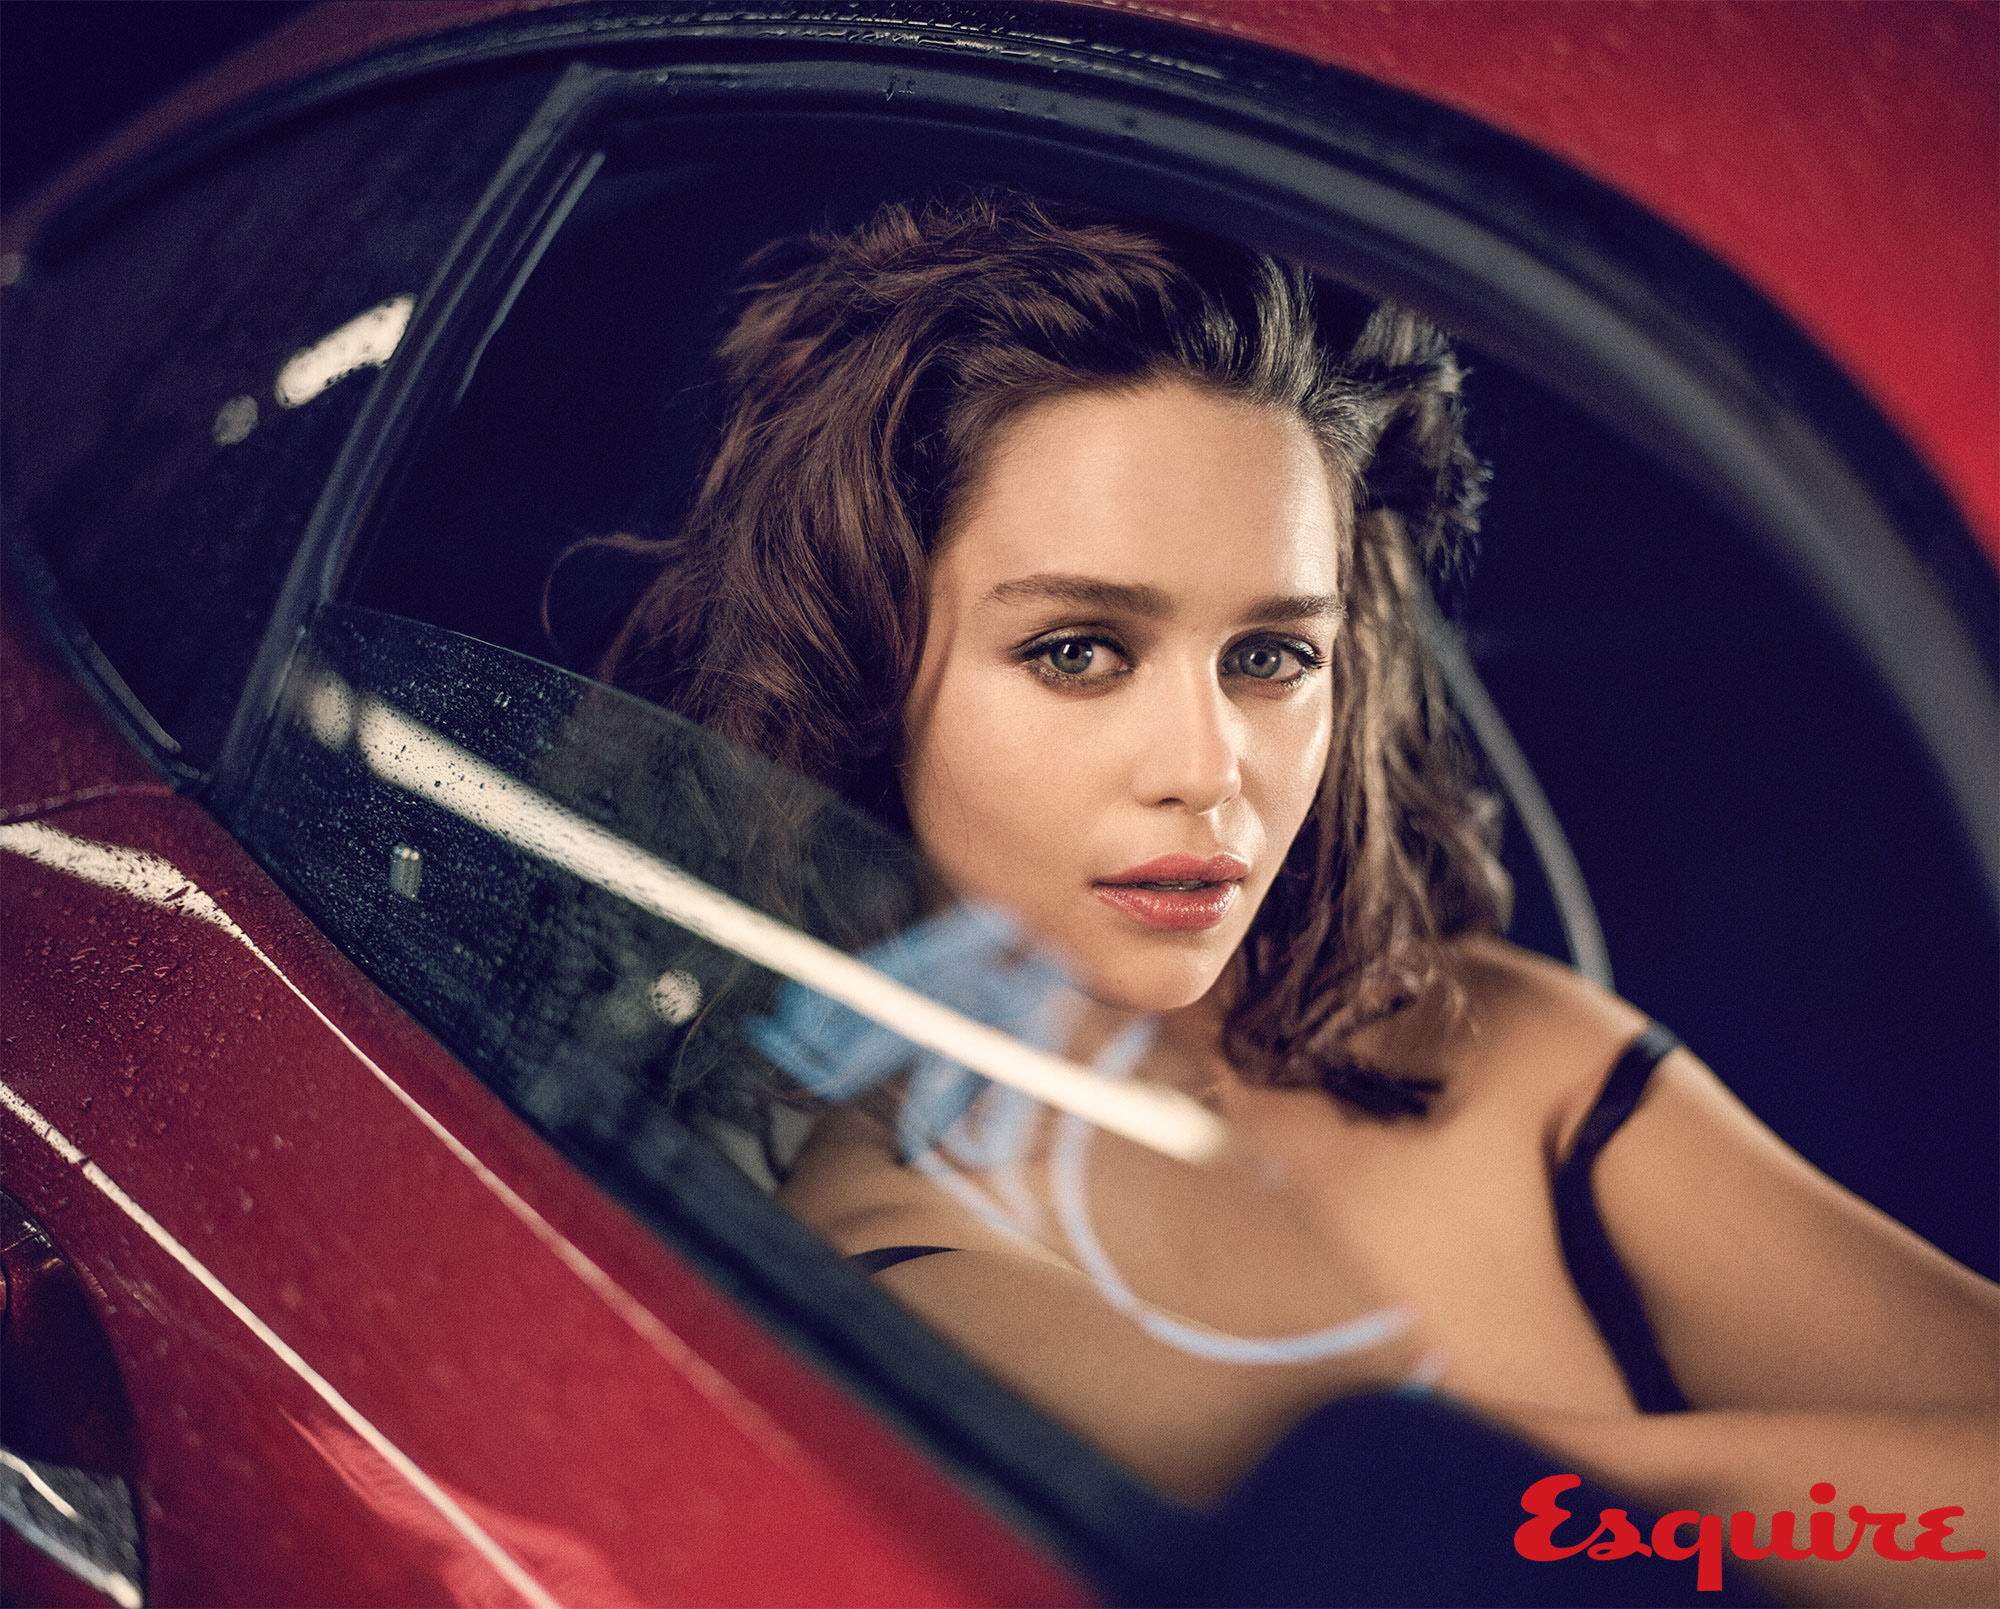 HIGH RES Esquire emilia-clarke-sexiest-woman-alive-2015 11